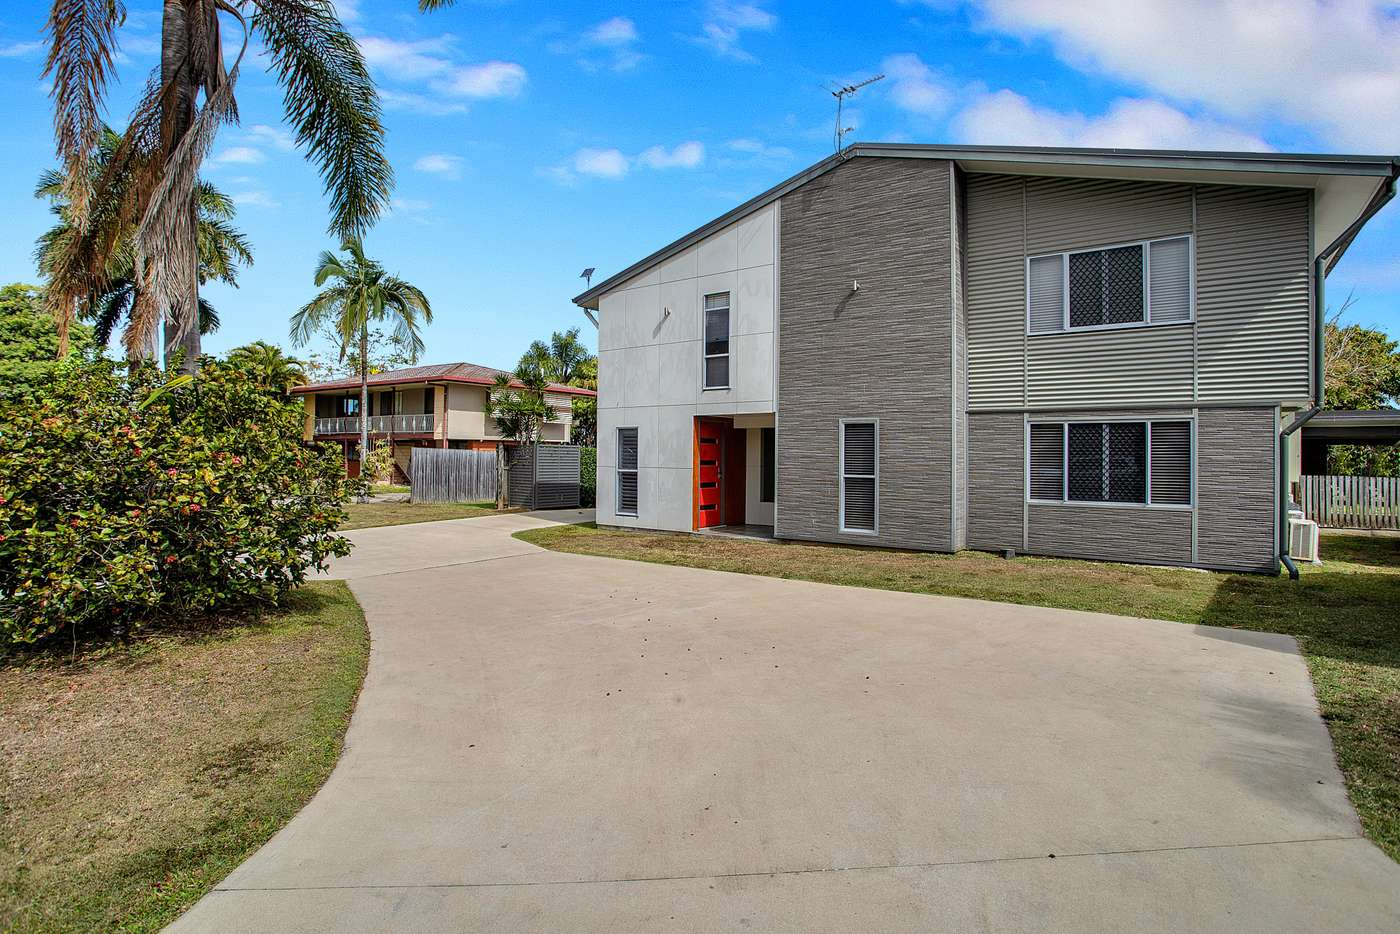 Main view of Homely house listing, 17 Charles Hodge Avenue, Mount Pleasant QLD 4740